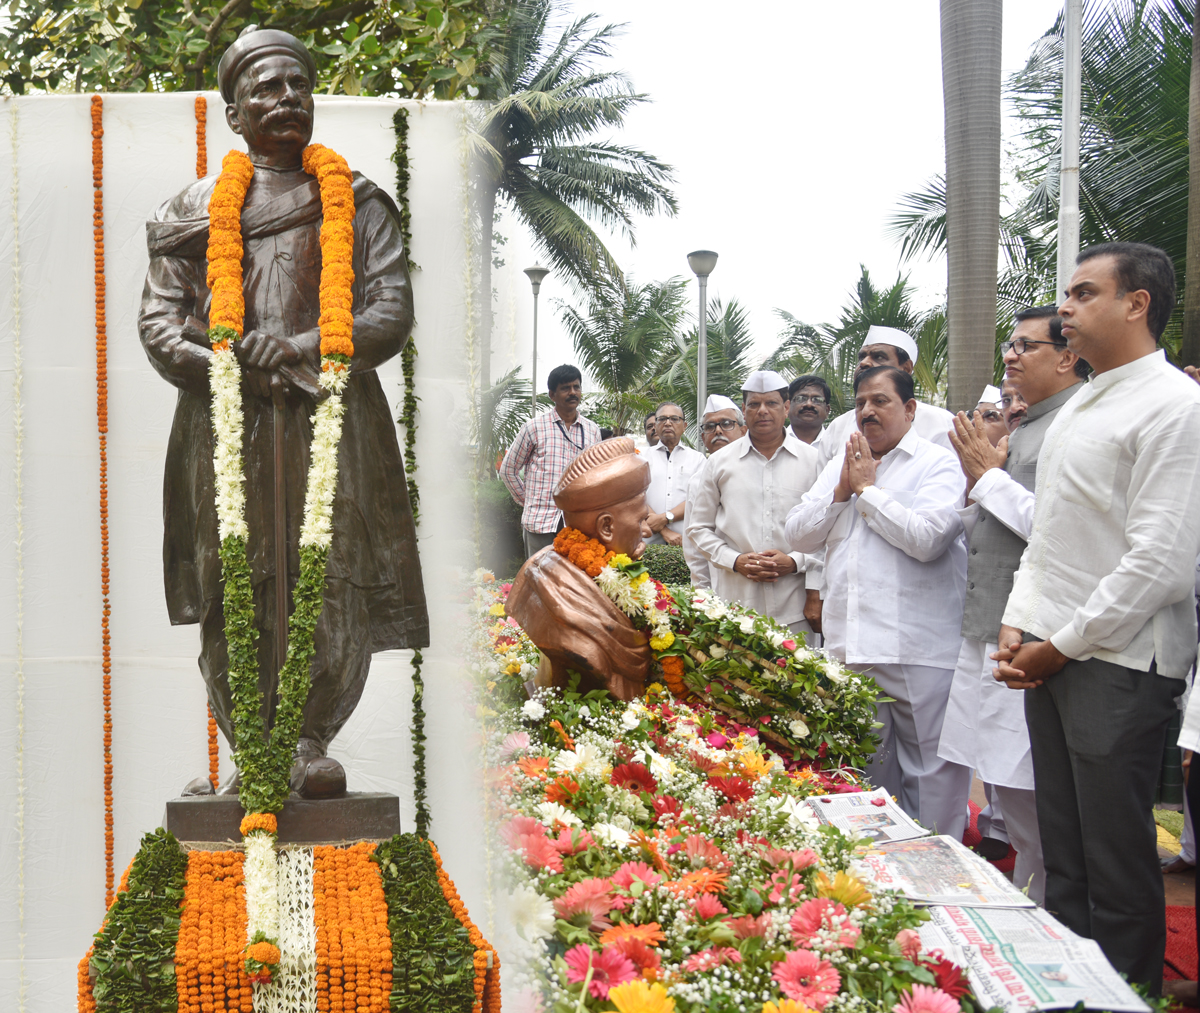 Congress Leaders MPCC President Balasaheb Thorat & MRCC President Milind Deora Paying Tribute to Lokmanya Tilak at Girgaon Chowpatty on his Death Anniversary.